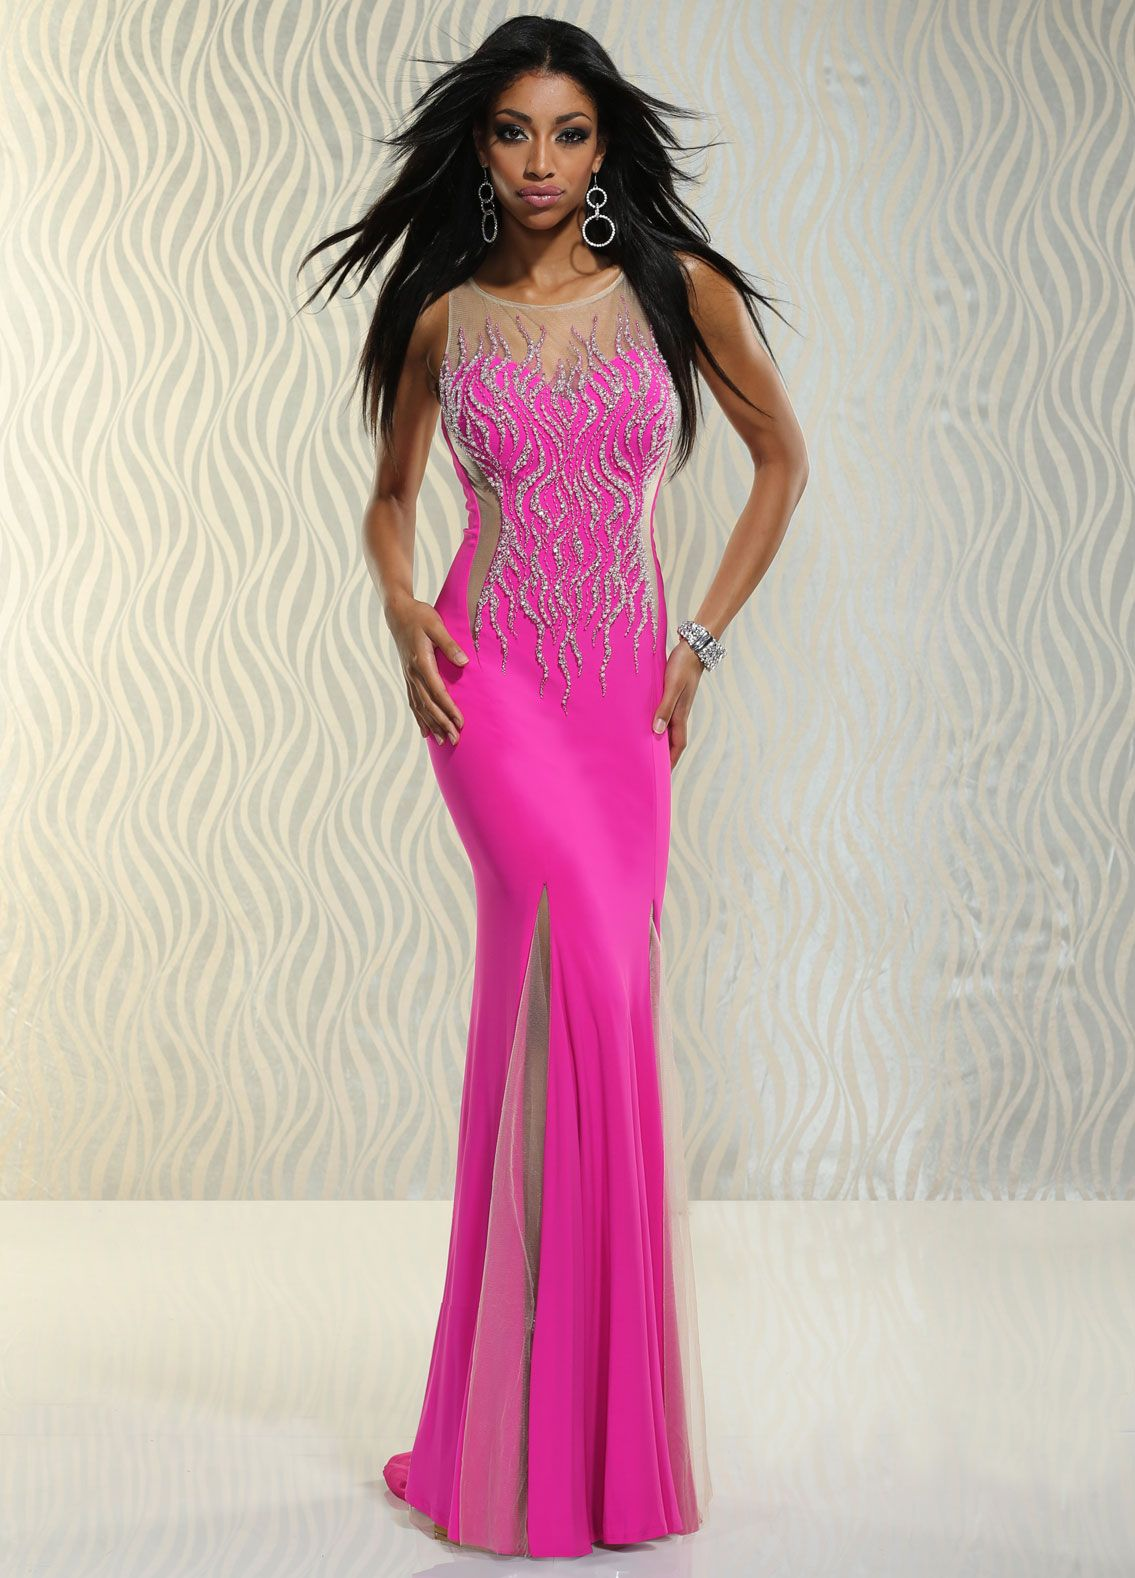 Prom Gowns by Xcite Prom | Prom | Pinterest | Prom, Gowns and Homecoming